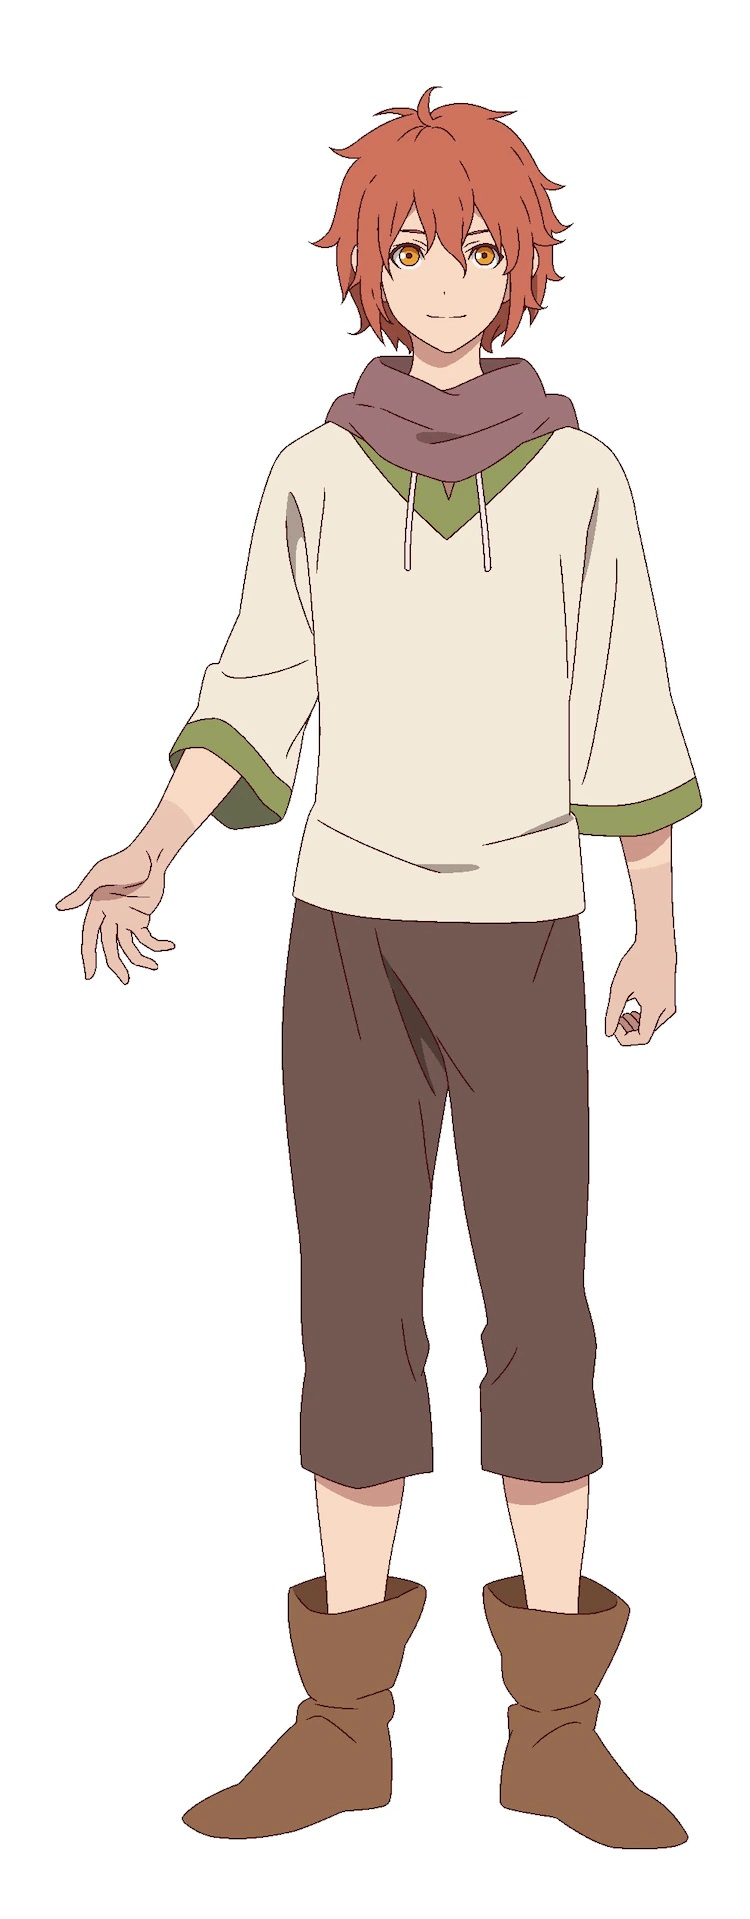 A character setting for Will, the protagonist from the upcoming The Faraway Paladin TV anime. Will is a slender young man with red hair who is dressed as a peasant in a simple shirt, slacks, and boots.